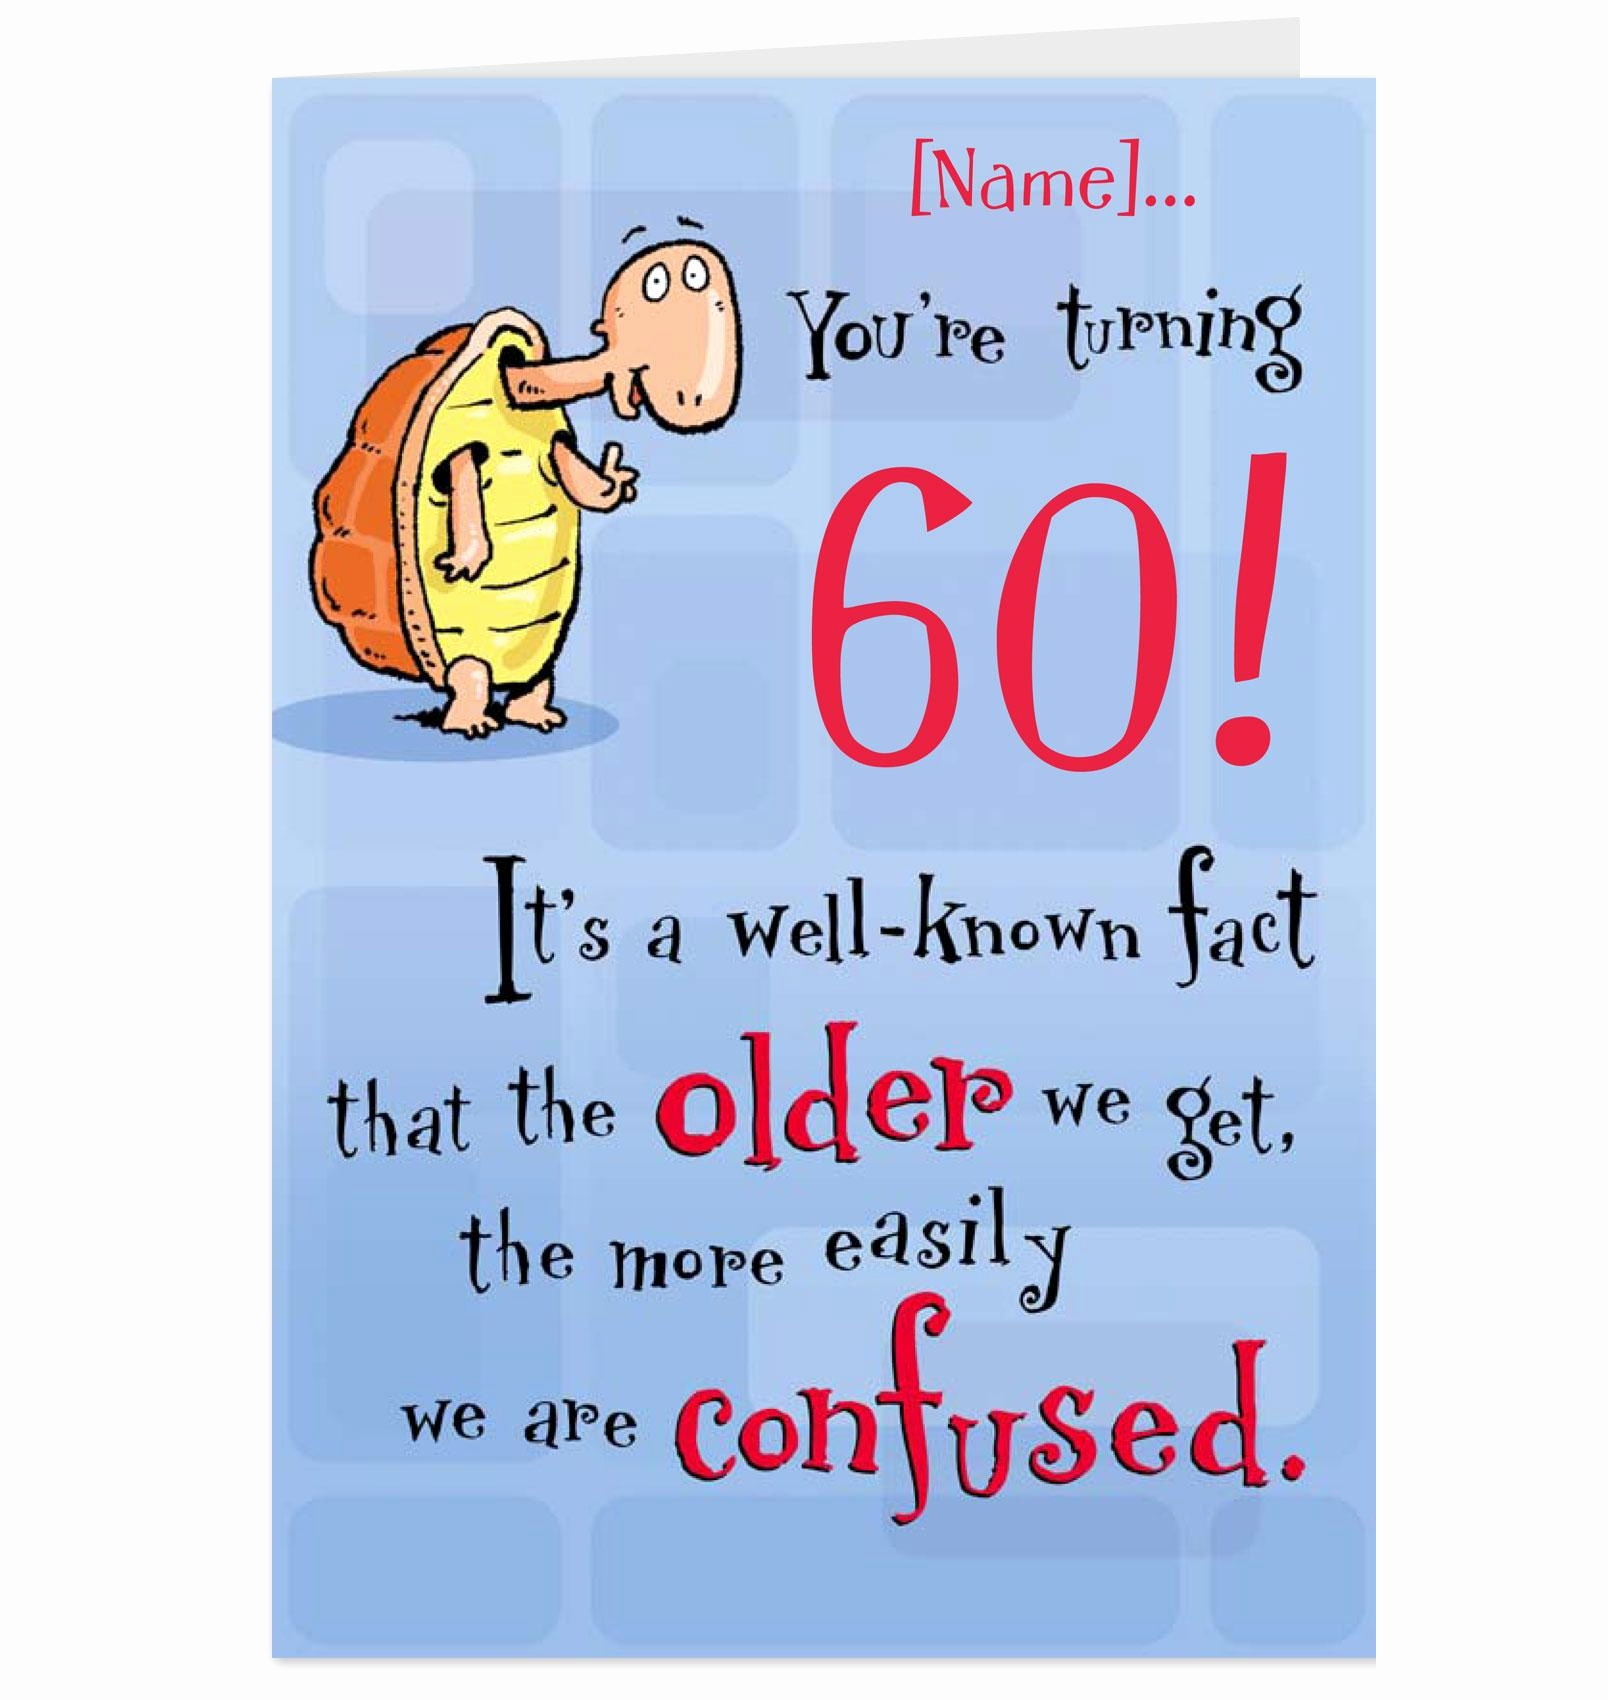 funny 60th birthday card messages ; funniest%2520birthday%2520card%2520messages%2520;%2520cheesy-birthday-card-messages-beautiful-hallmark-birthday-cards-of-cheesy-birthday-card-messages